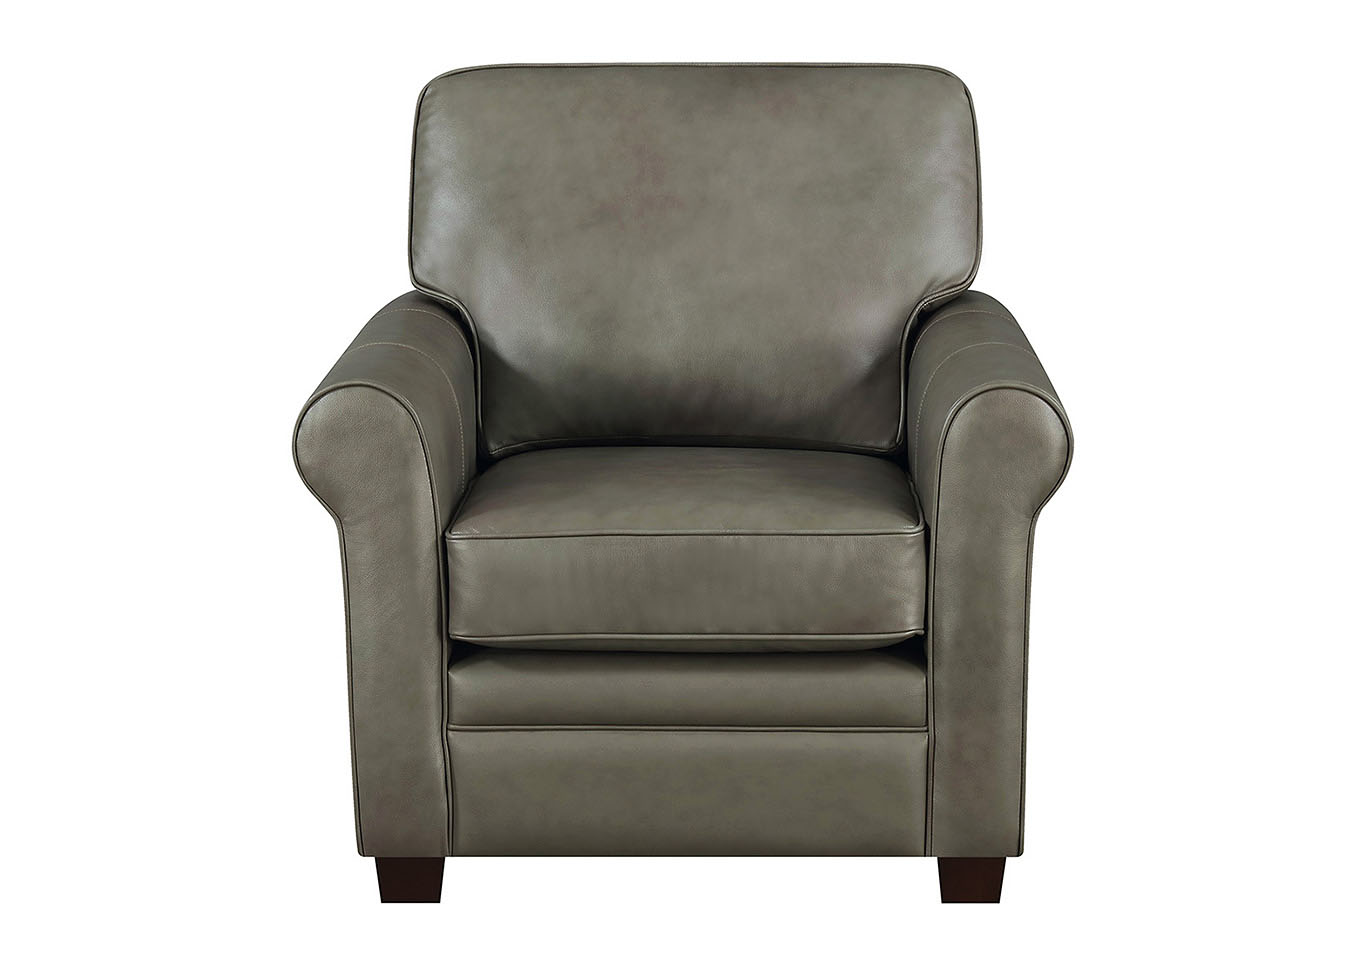 Wondrous Taba Home Furnishings April Gray Leather Match Stationary 4 Machost Co Dining Chair Design Ideas Machostcouk